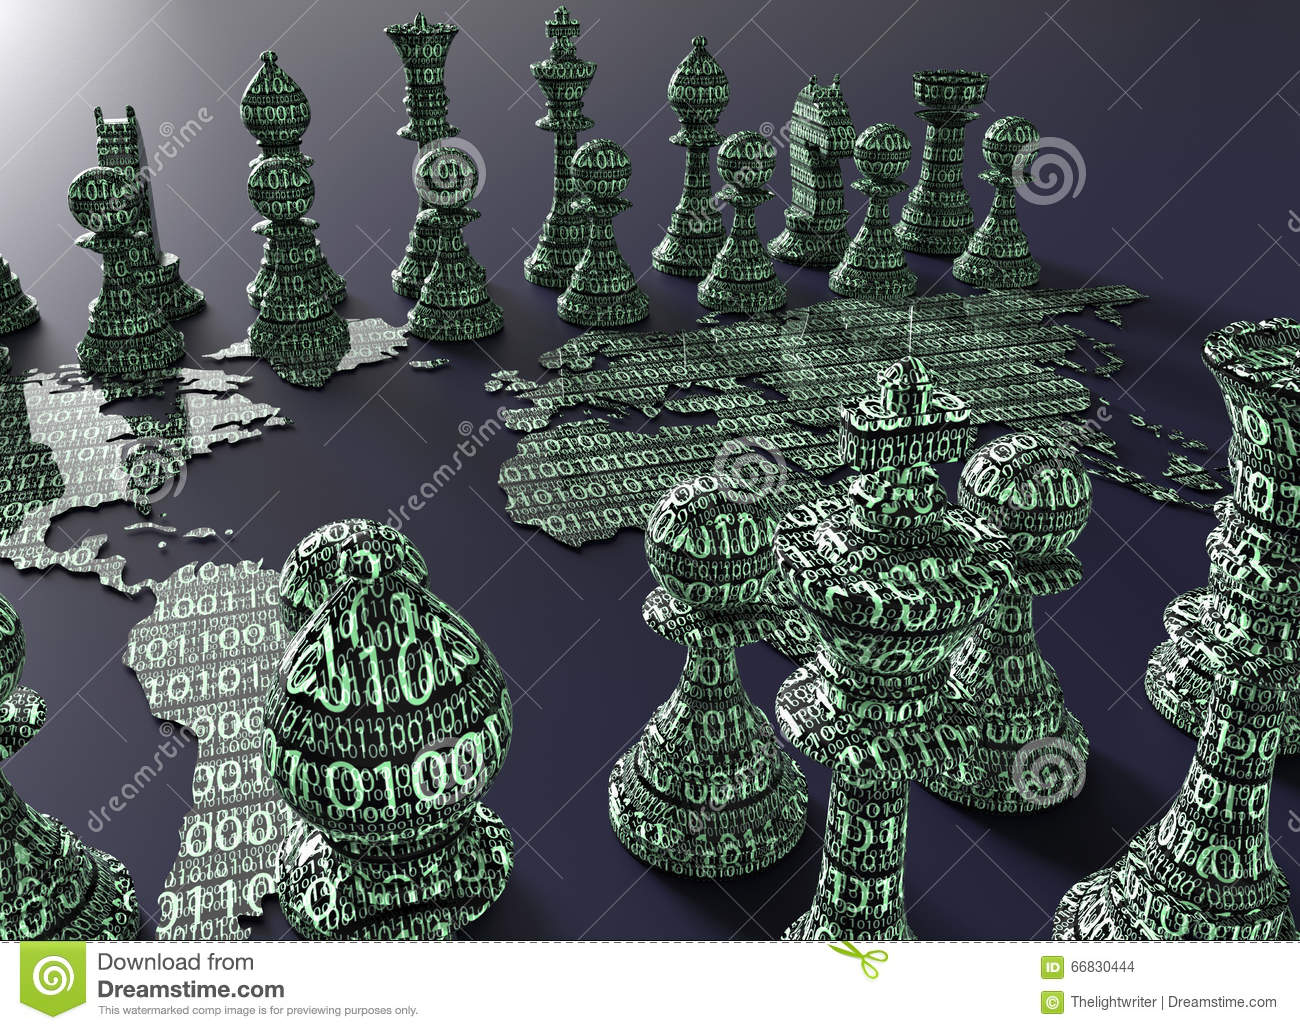 Digital world map chess board with chess play stock illustration digital world map chess board with chess play illustration countries gumiabroncs Choice Image